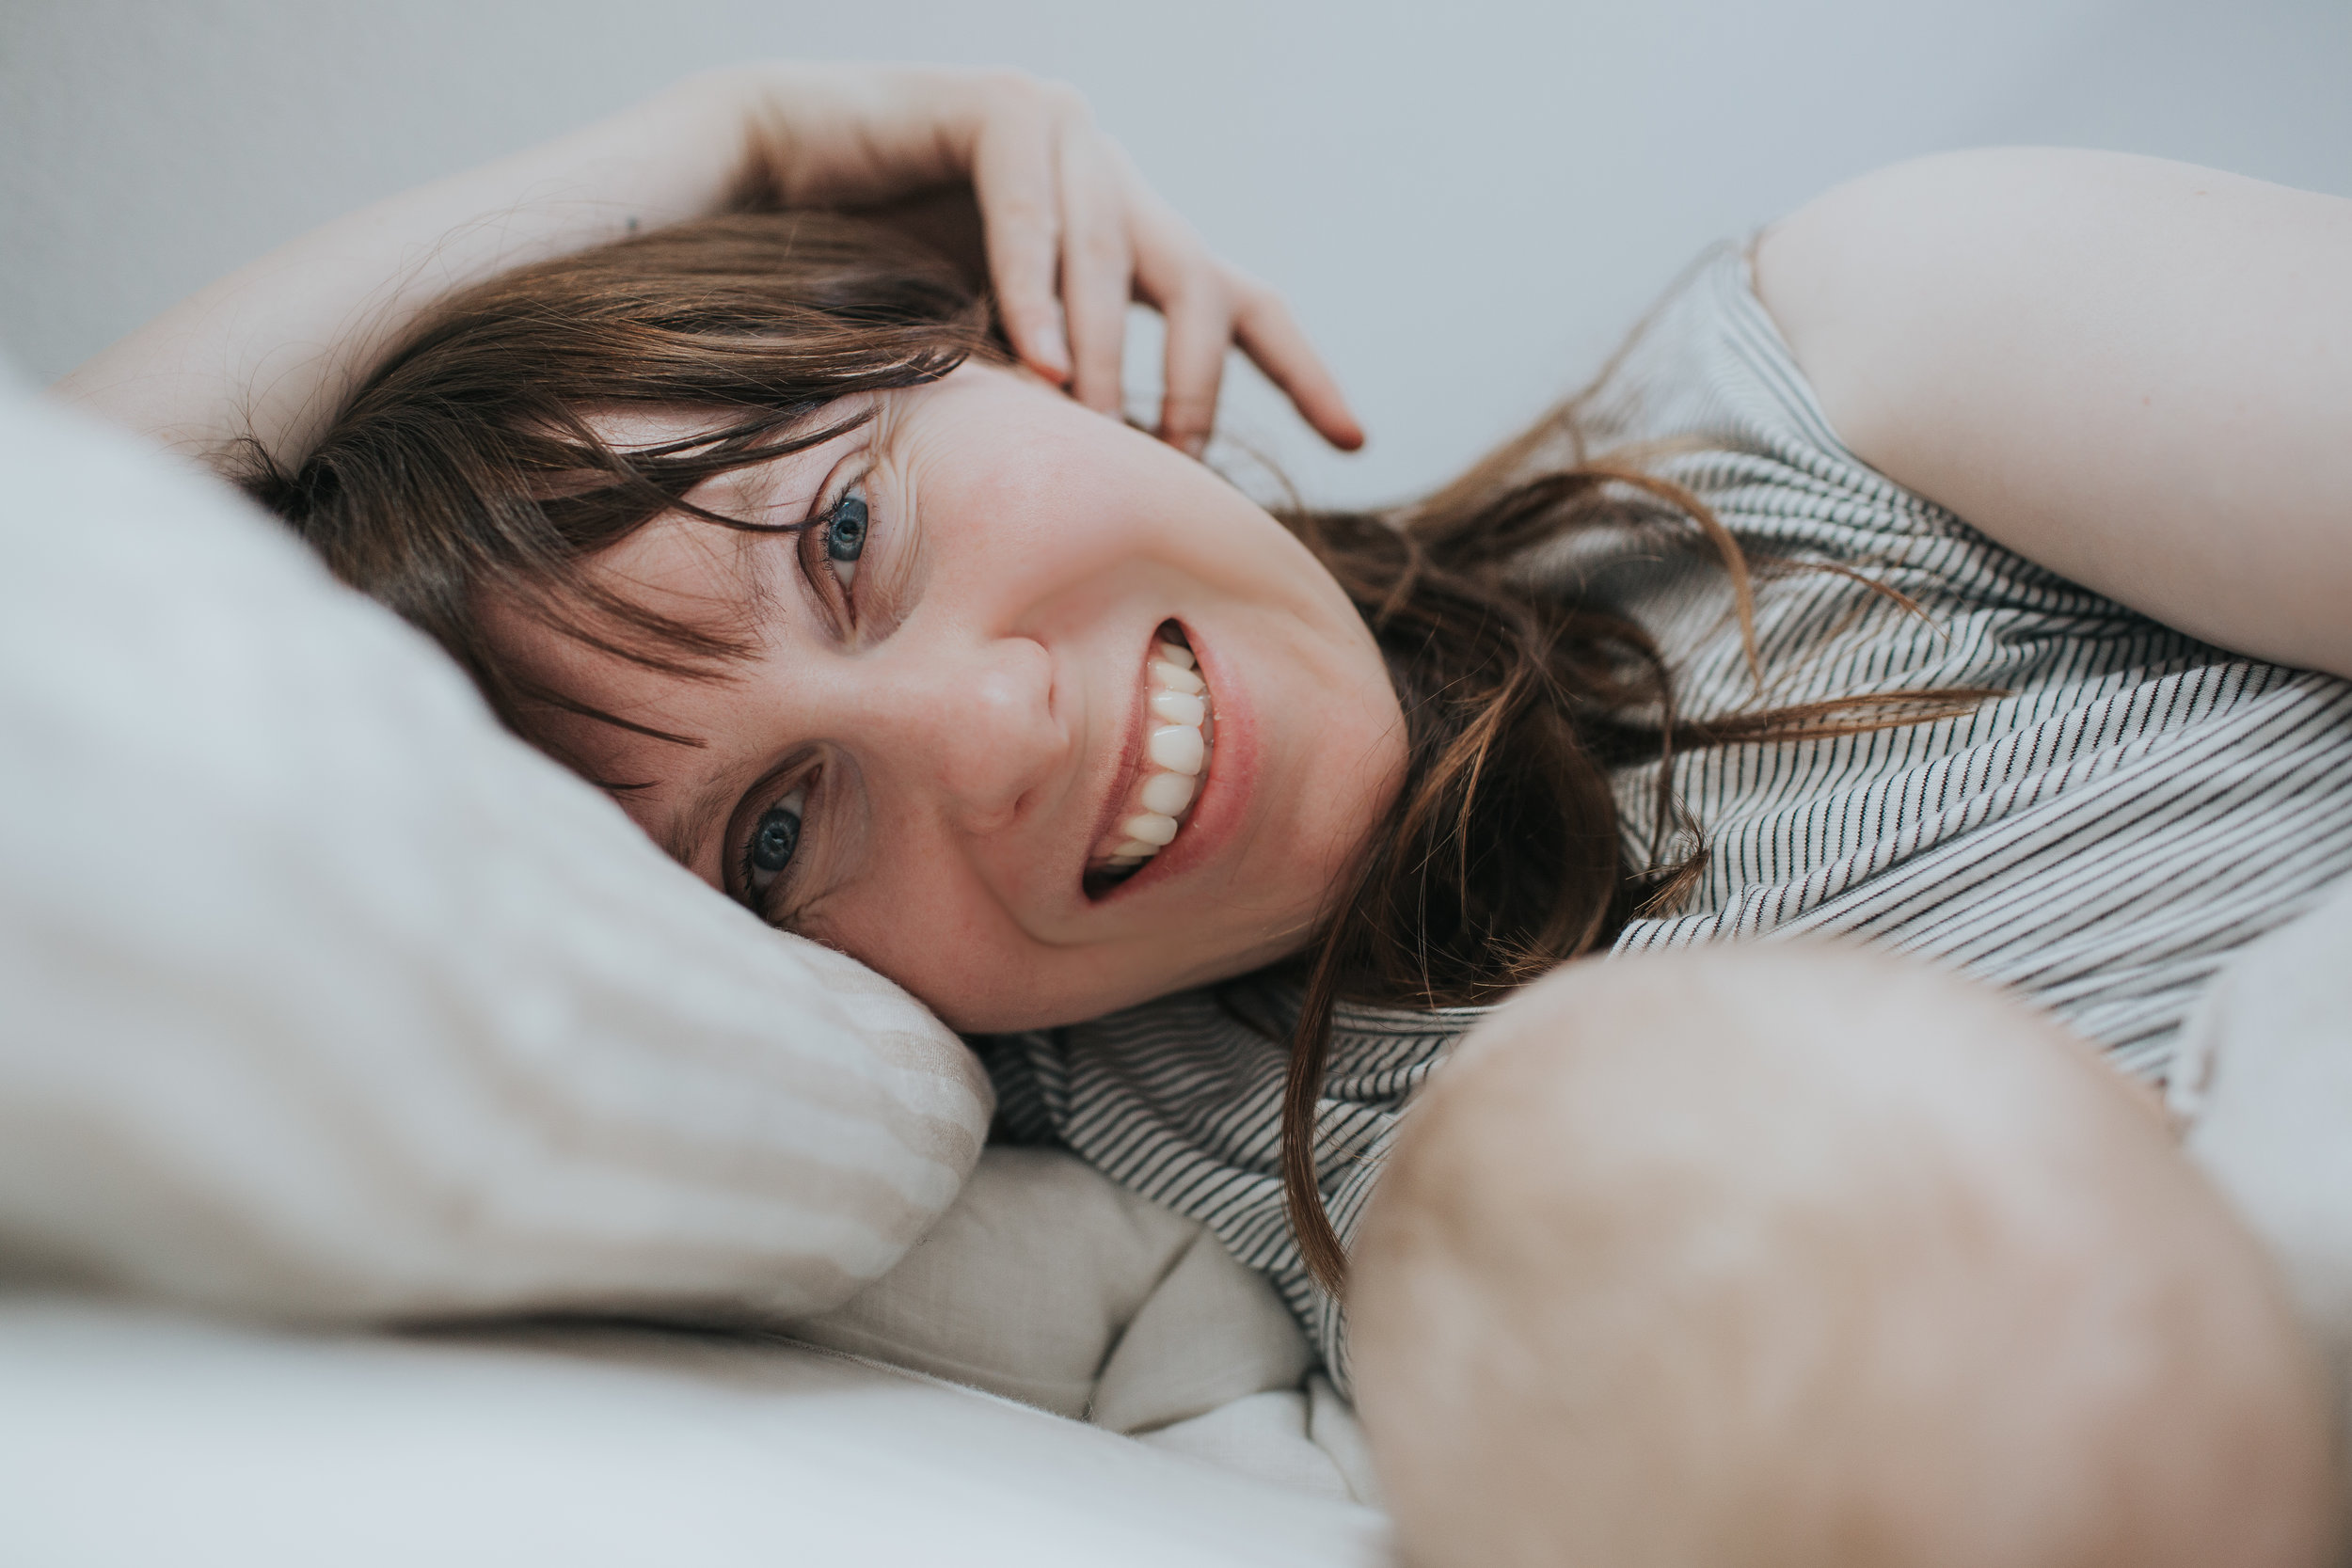 """Eva-Maria Smith writes an honest blog on motherhood, slow living and """"hygge"""" lifestyle. She is the lifestyle photographer and writer behind """"House of Smilla""""."""